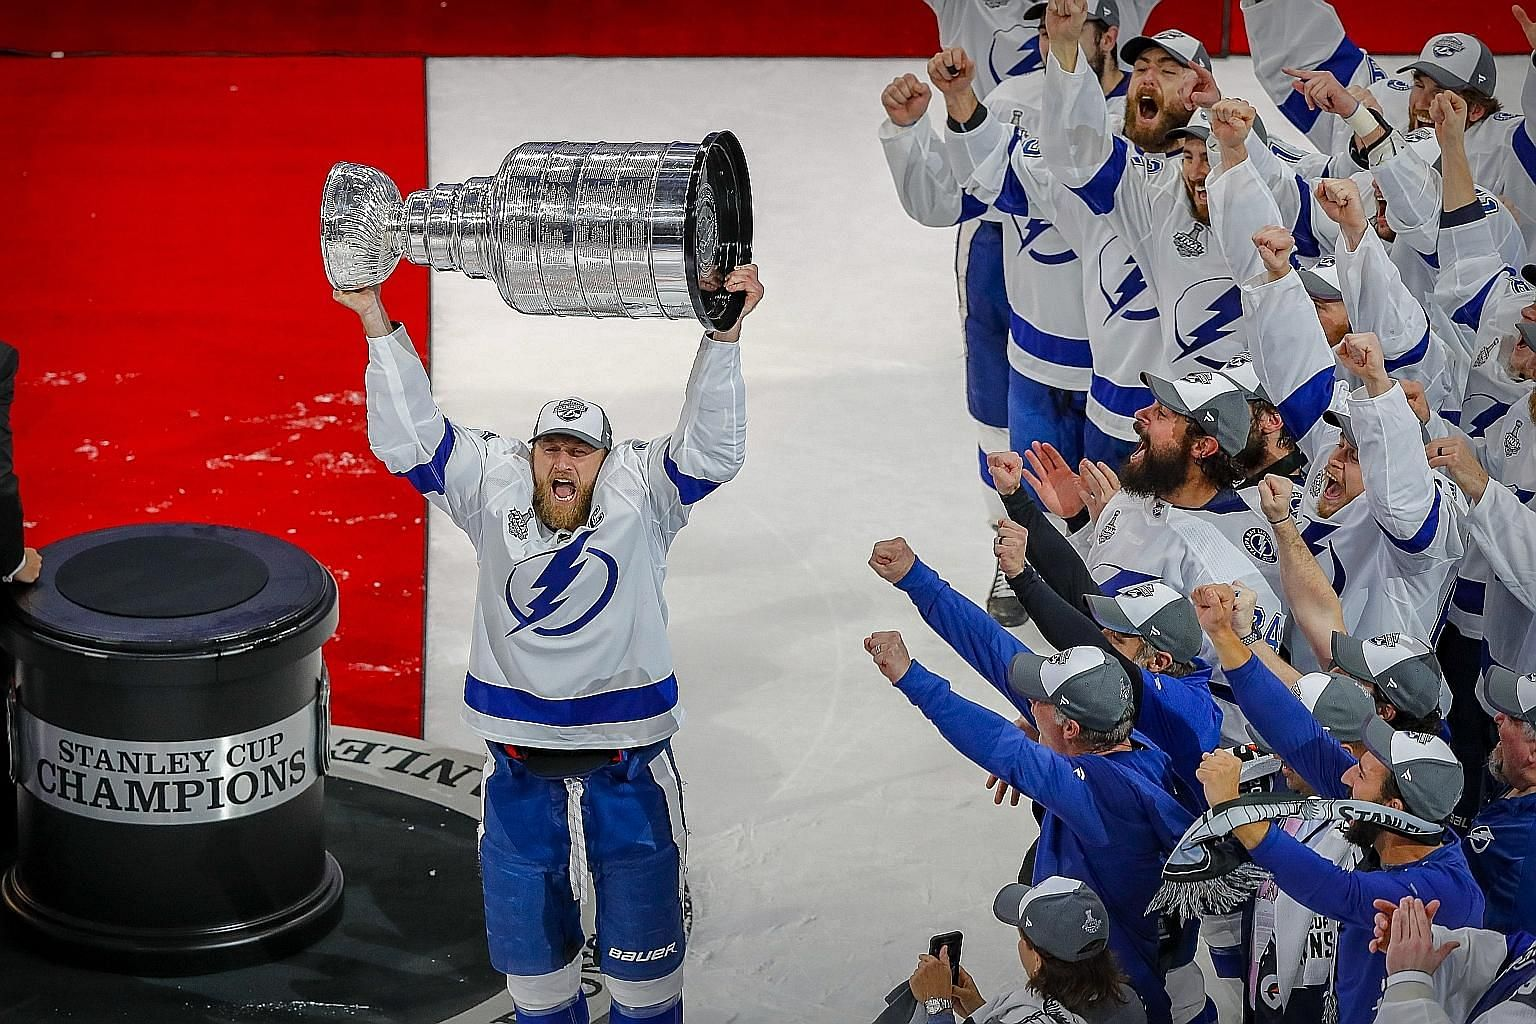 """One of the greatest feelings in the world"" for centre Steven Stamkos, as he hoists the Stanley Cup after Tampa Bay beat Dallas 2-0 in Edmonton to win the finals series 4-2 for their second title."